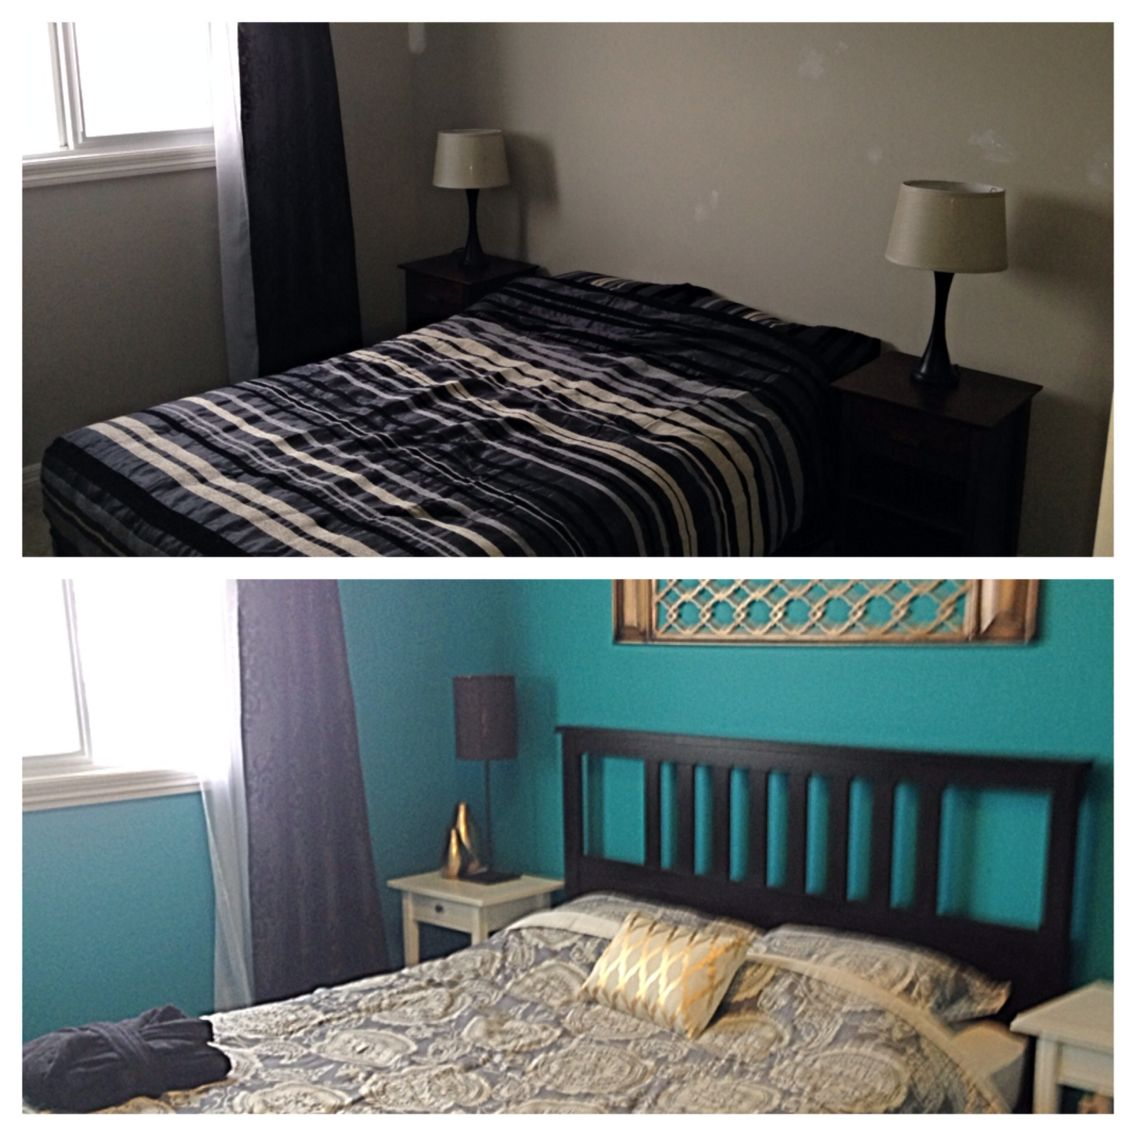 Before and after guest bedroom.